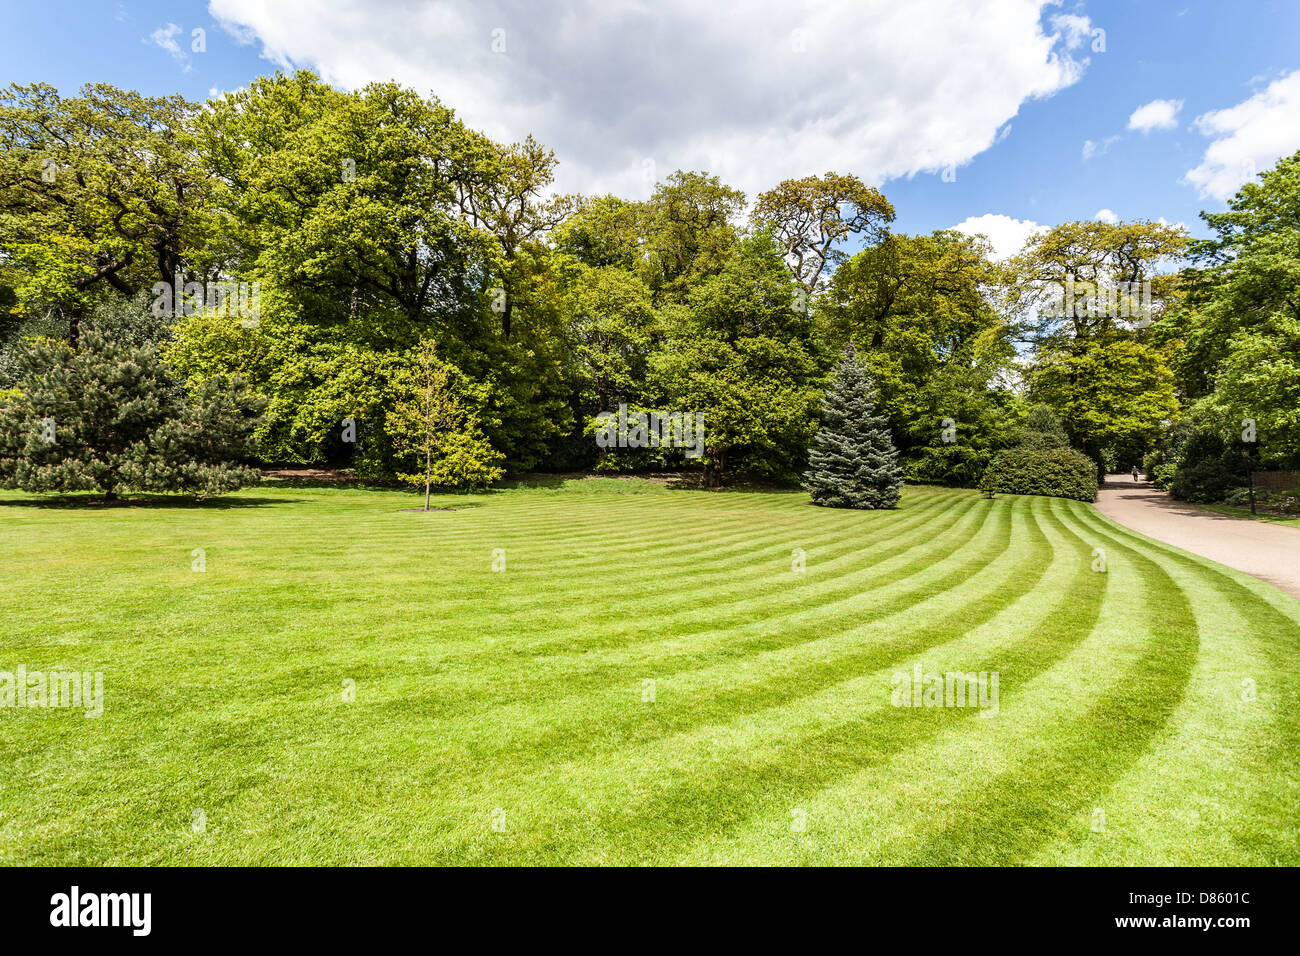 Green lawn with mown stripes, Hampstead Heath, London, England, UK - Stock Image